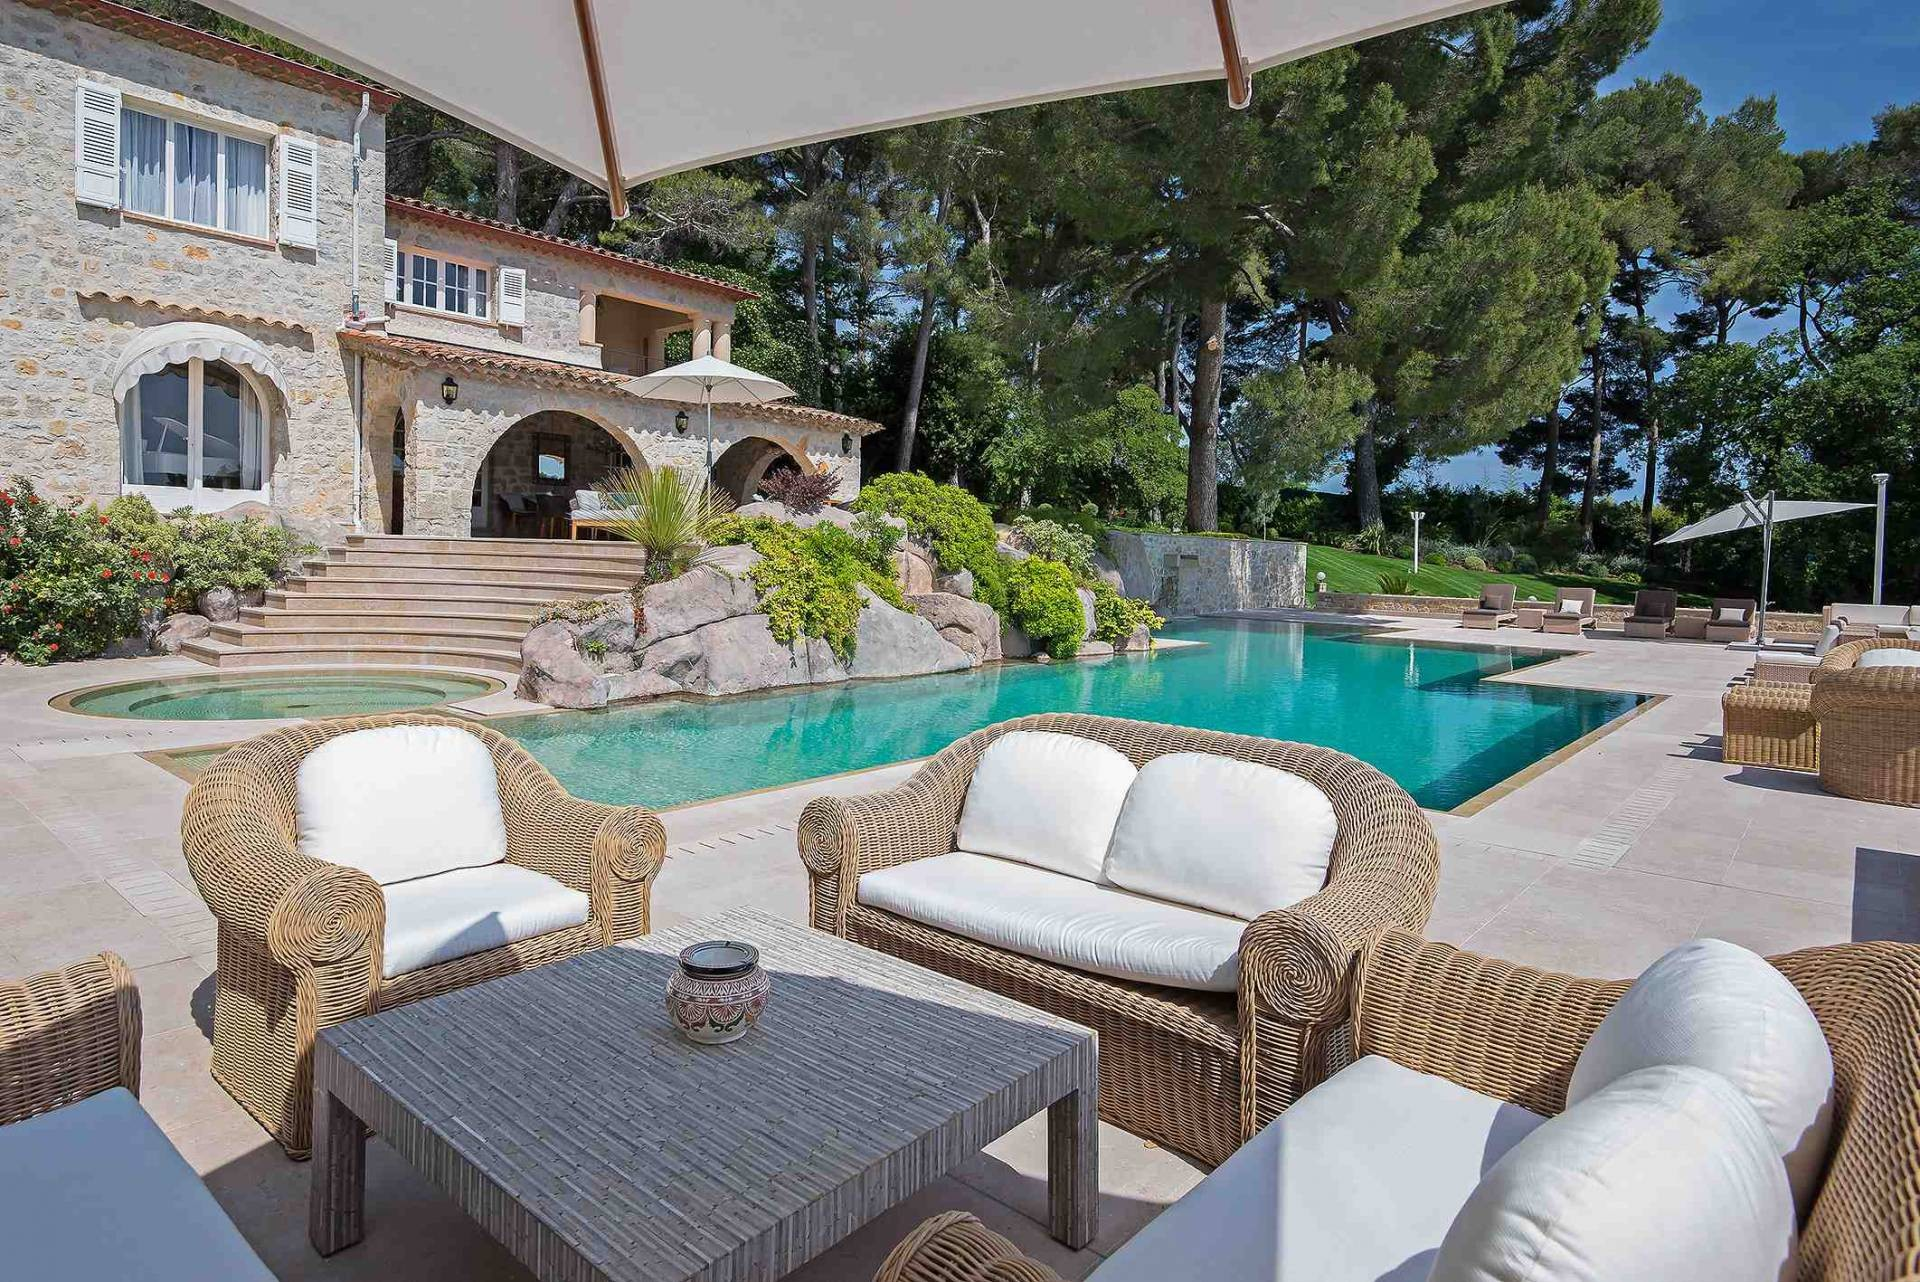 11 bedroom house for sale mougins, french riviera, vineyard